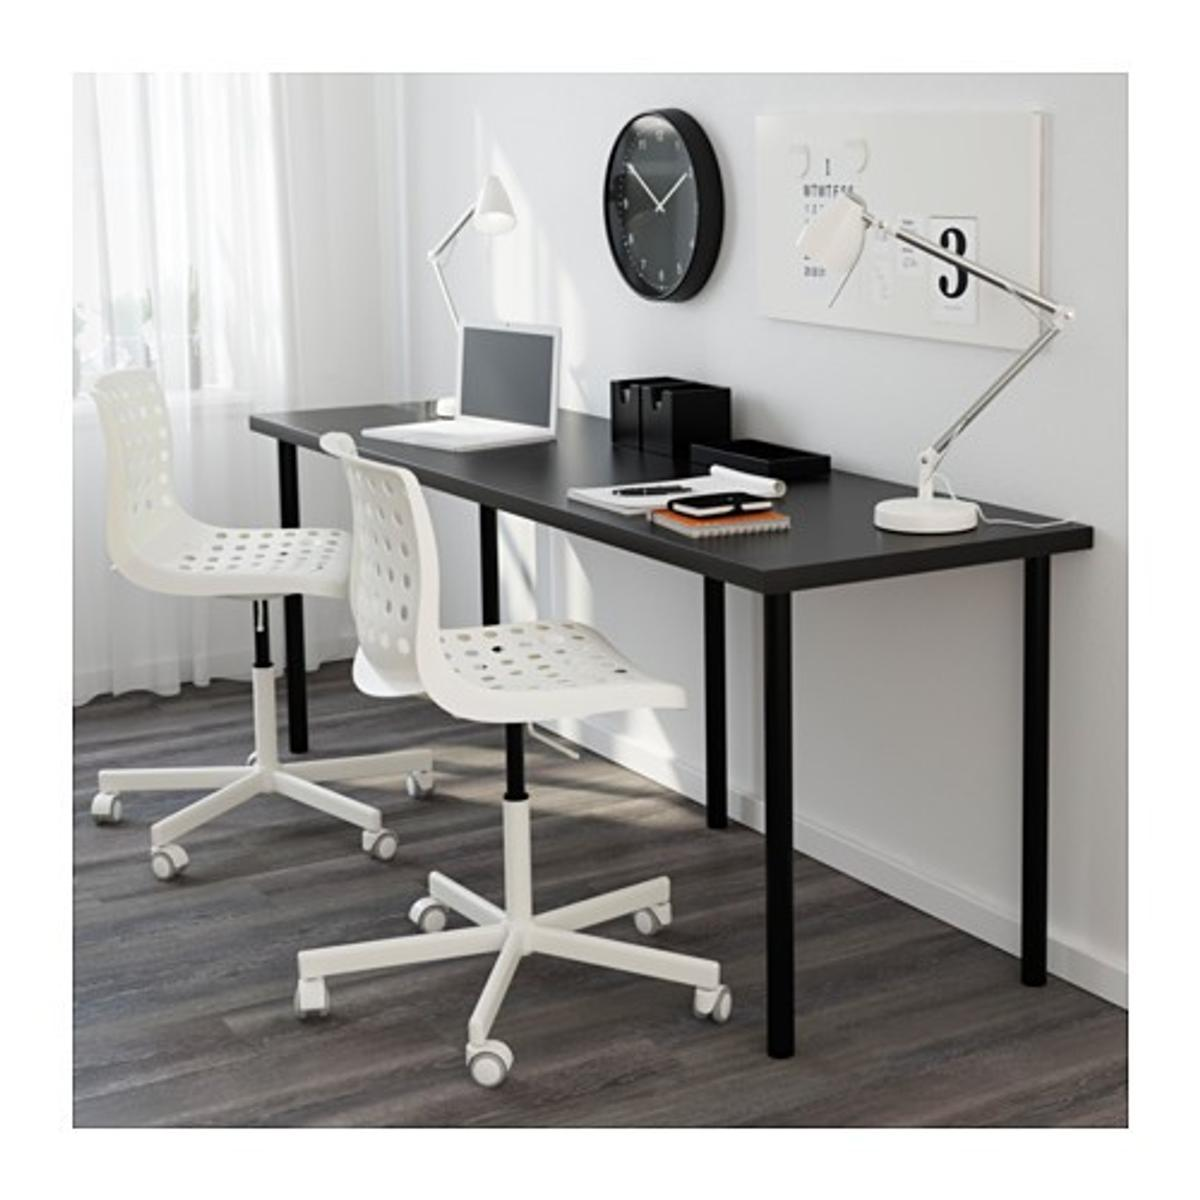 Scrivania ikea LINNMON / ADILS 2 metri in 20129 Milano for €90.00 ...